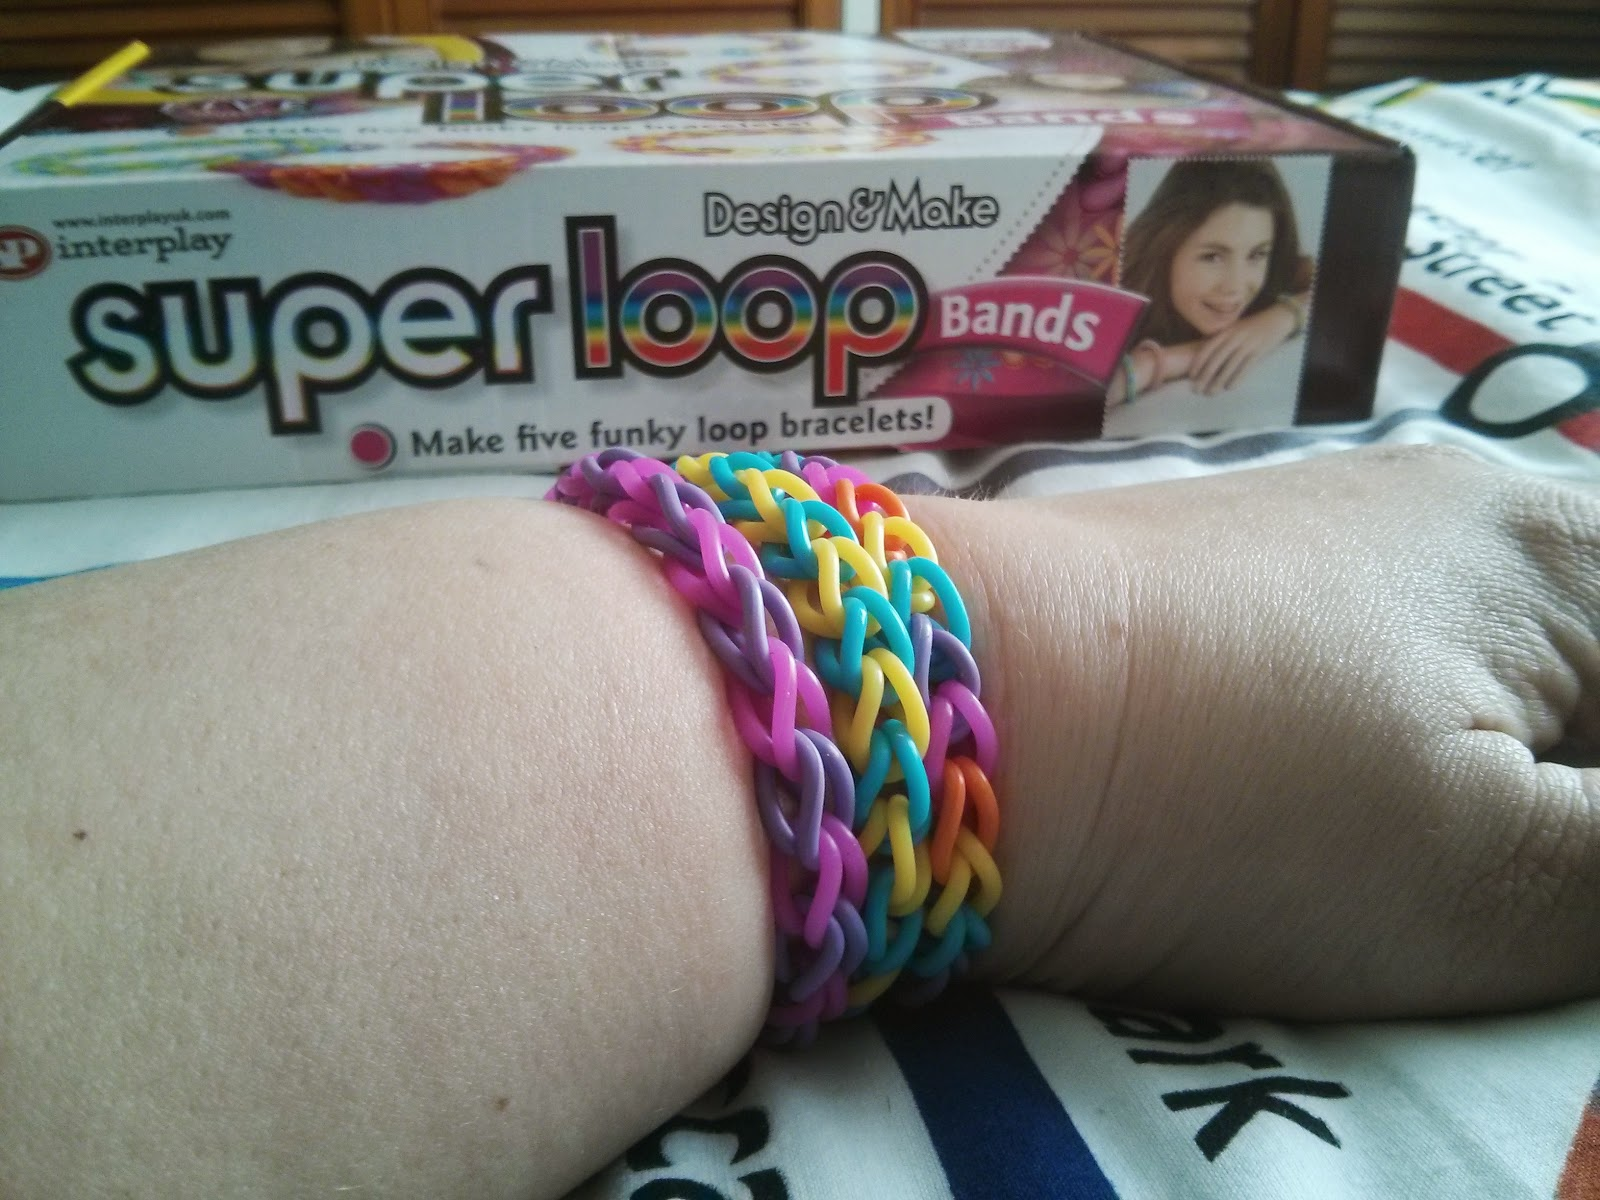 Interplay Super Loop Bands Review Bracelet Three